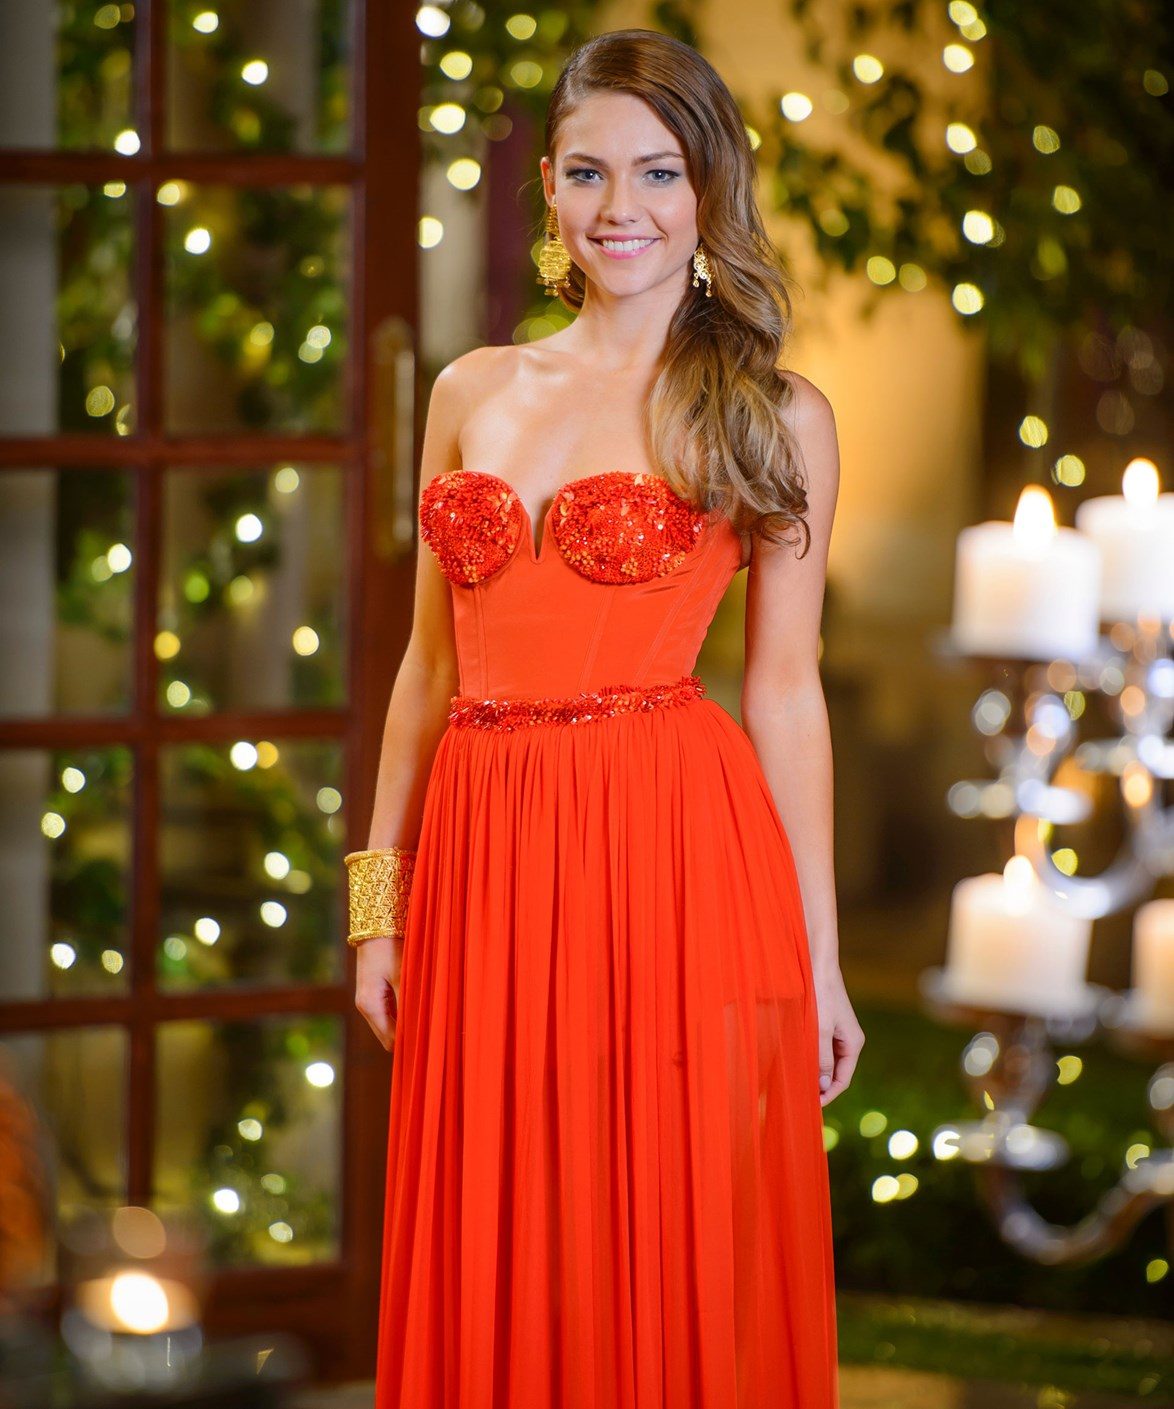 Sam Frost has continued to make headlines since appearing on *The Bachelor* in 2014.